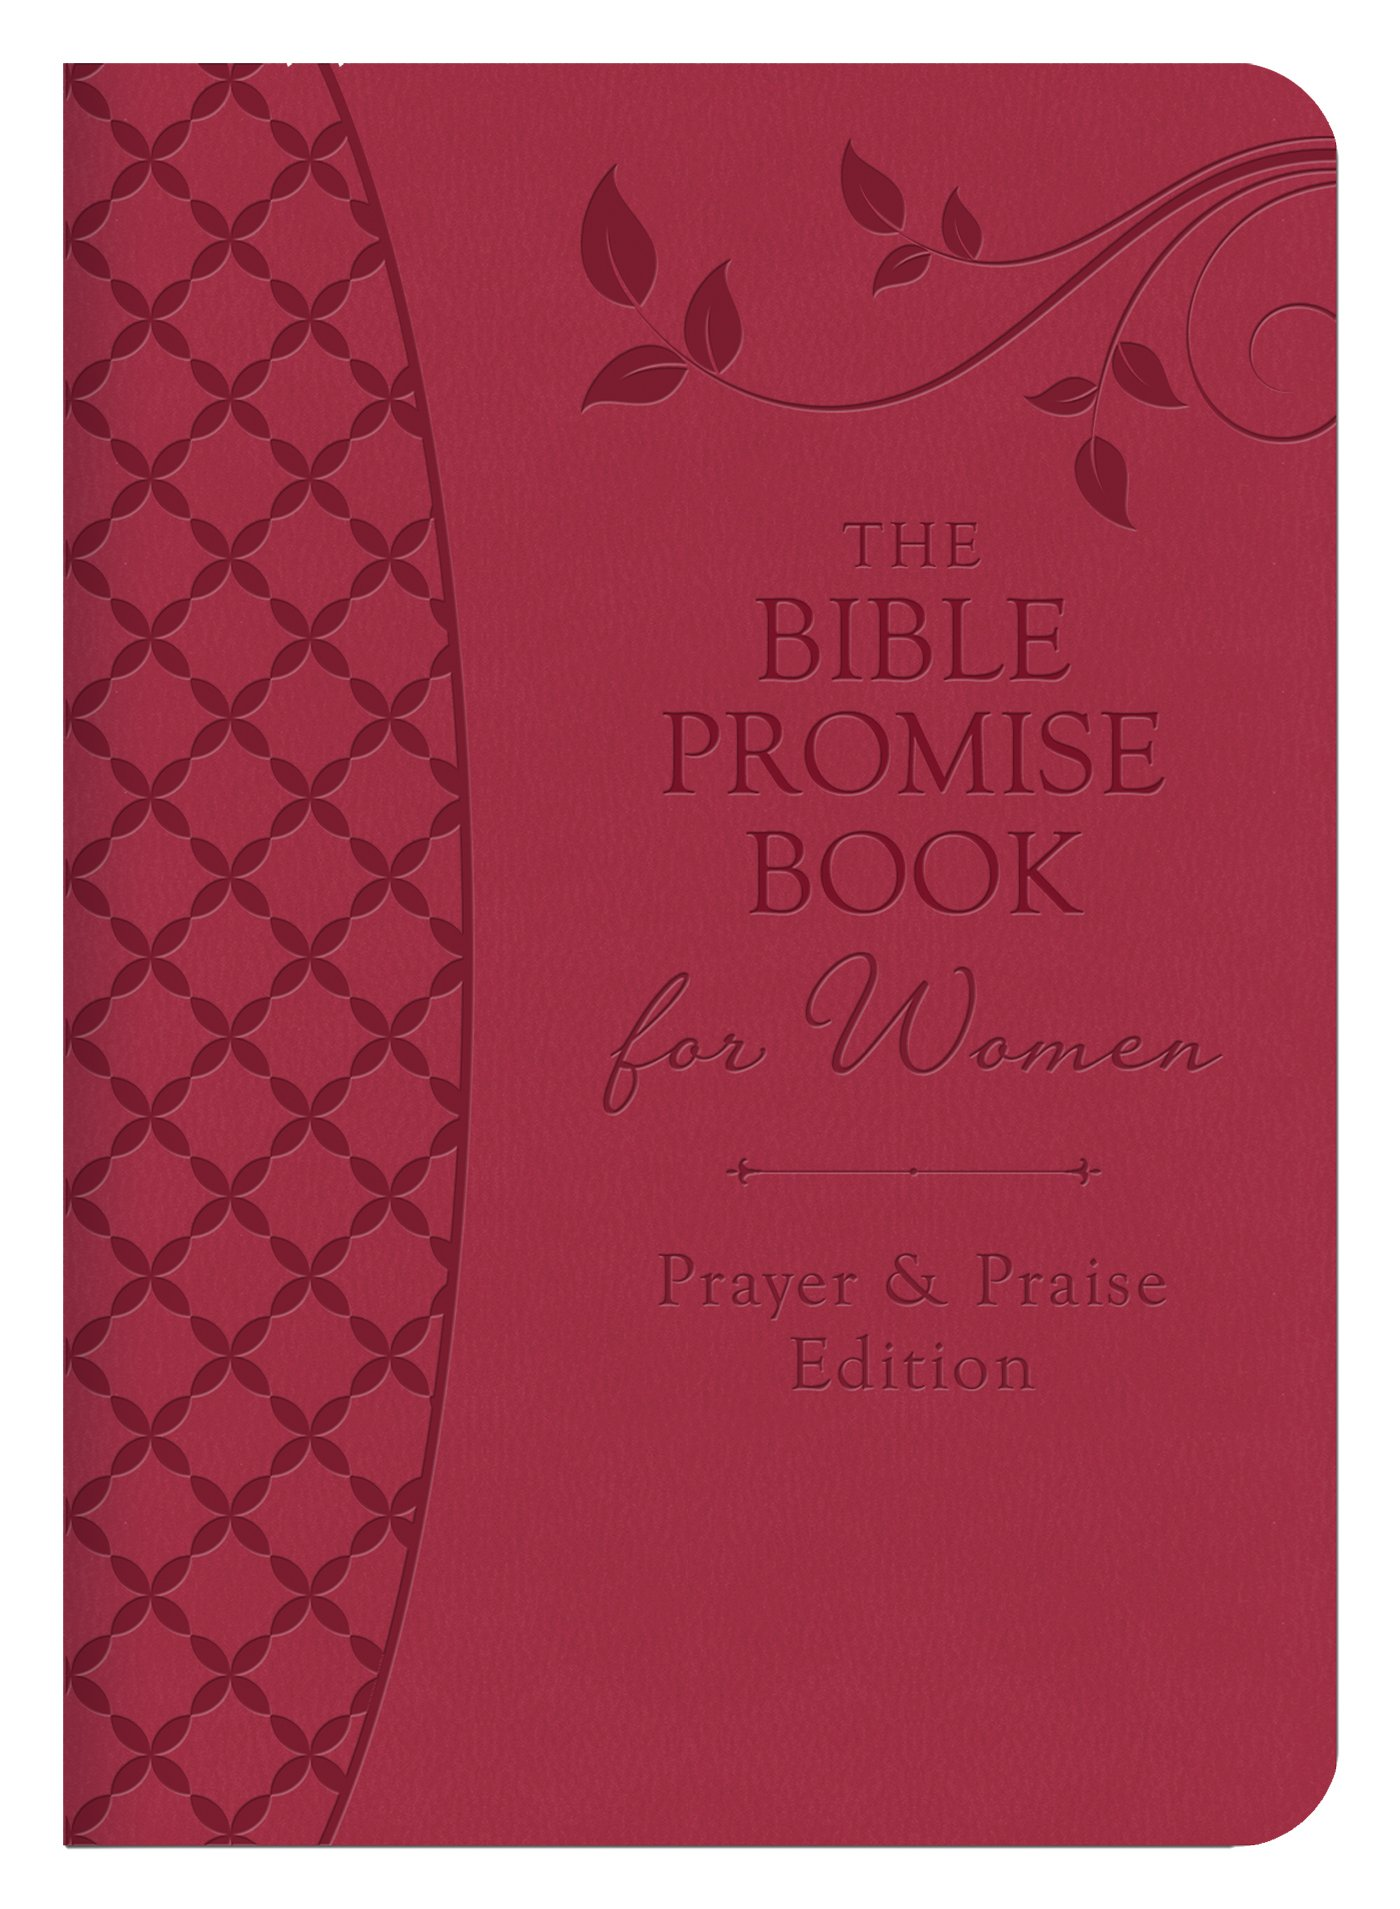 Amazon com: The Bible Promise Book for Women - Prayer